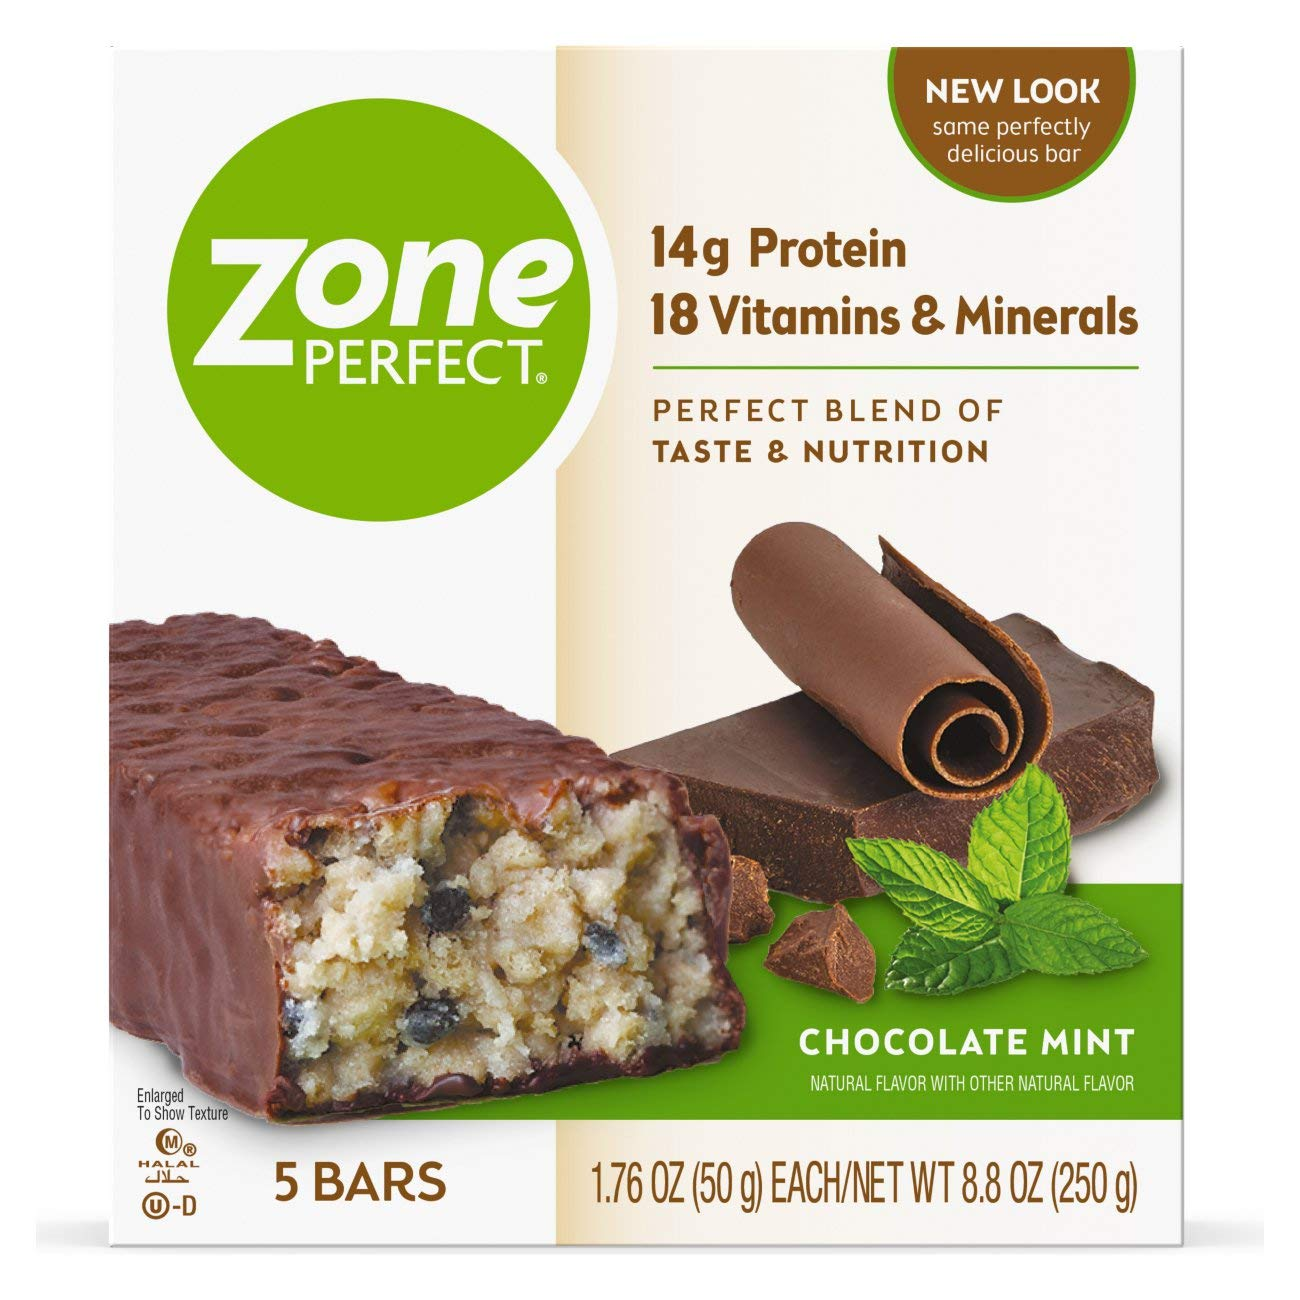 ZonePerfect Protein Bars, Chocolate Mint, 14g of Protein, Nutrition Bars With Vitamins Minerals, Great Taste Guaranteed, 5 Bars